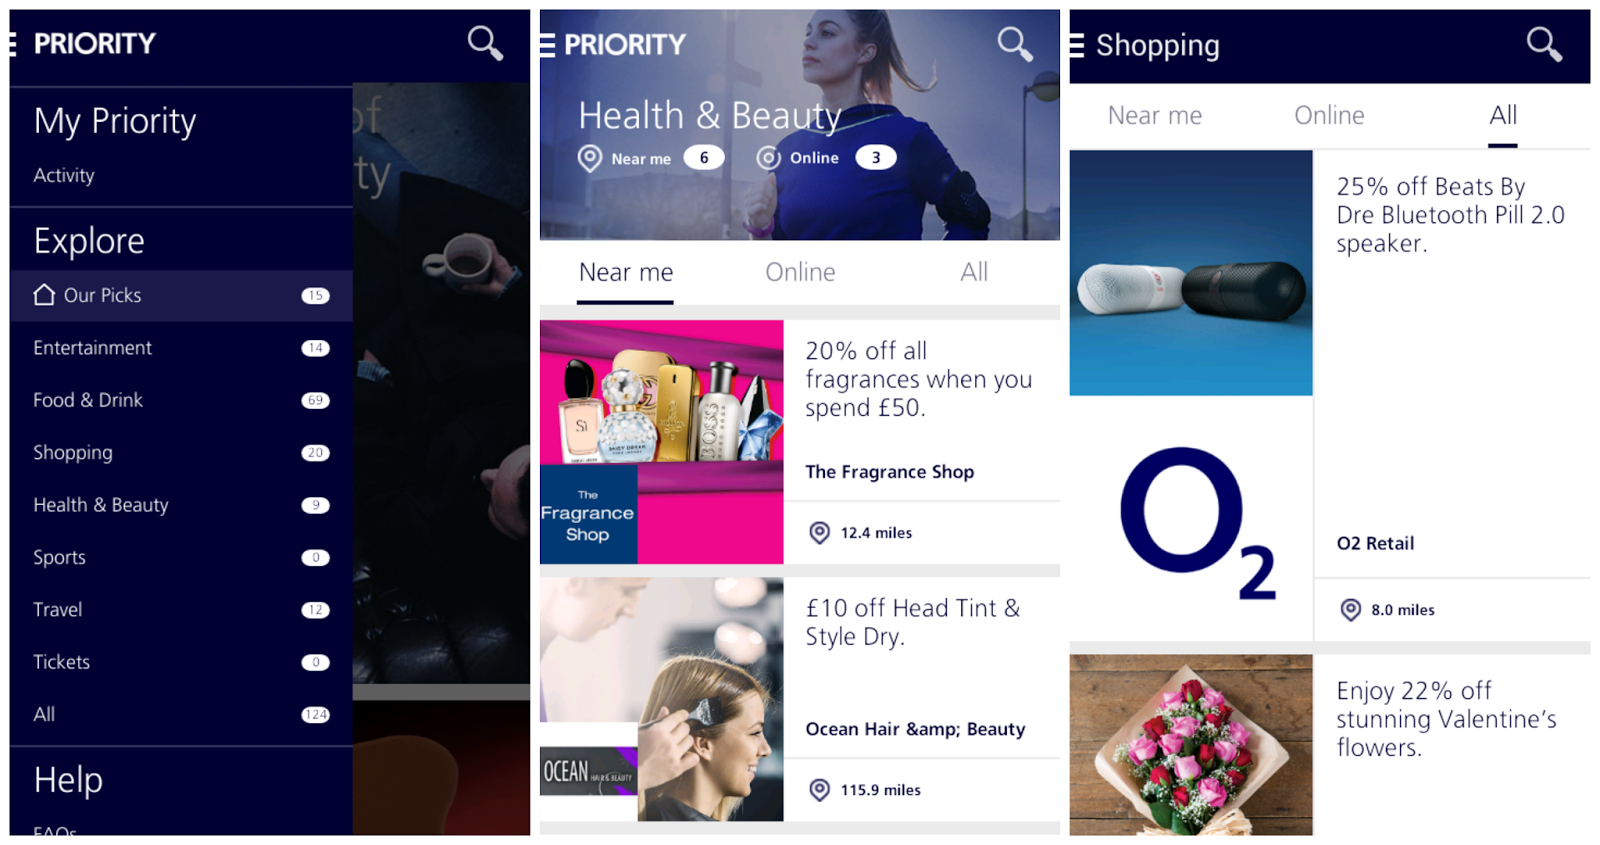 advantage loyalty cards money saving thriftiness o2 priority deals freebies